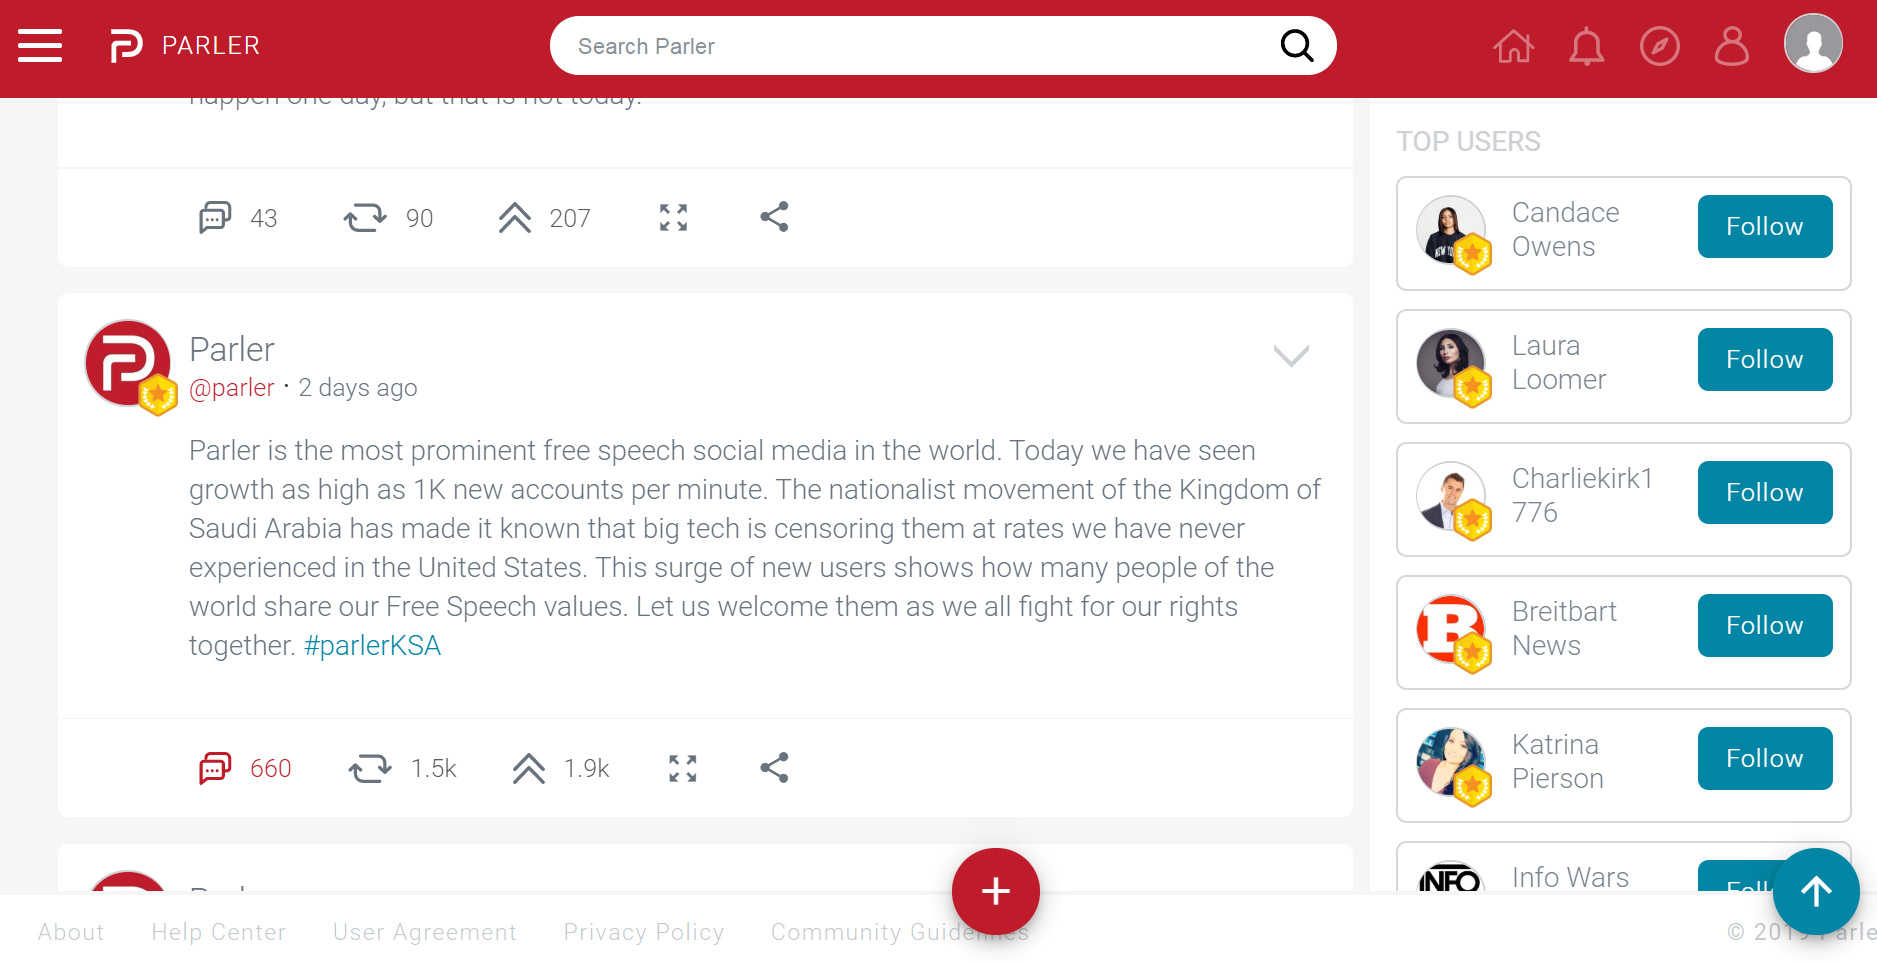 A computer screenshot of social media site Parler shows a post from the company's official account as thousands of new users who said they were from Saudi Arabia joined the site, previously used mostly by supporters of U.S. President Donald Trump, taken June 12, 2019. Parler via REUTERS